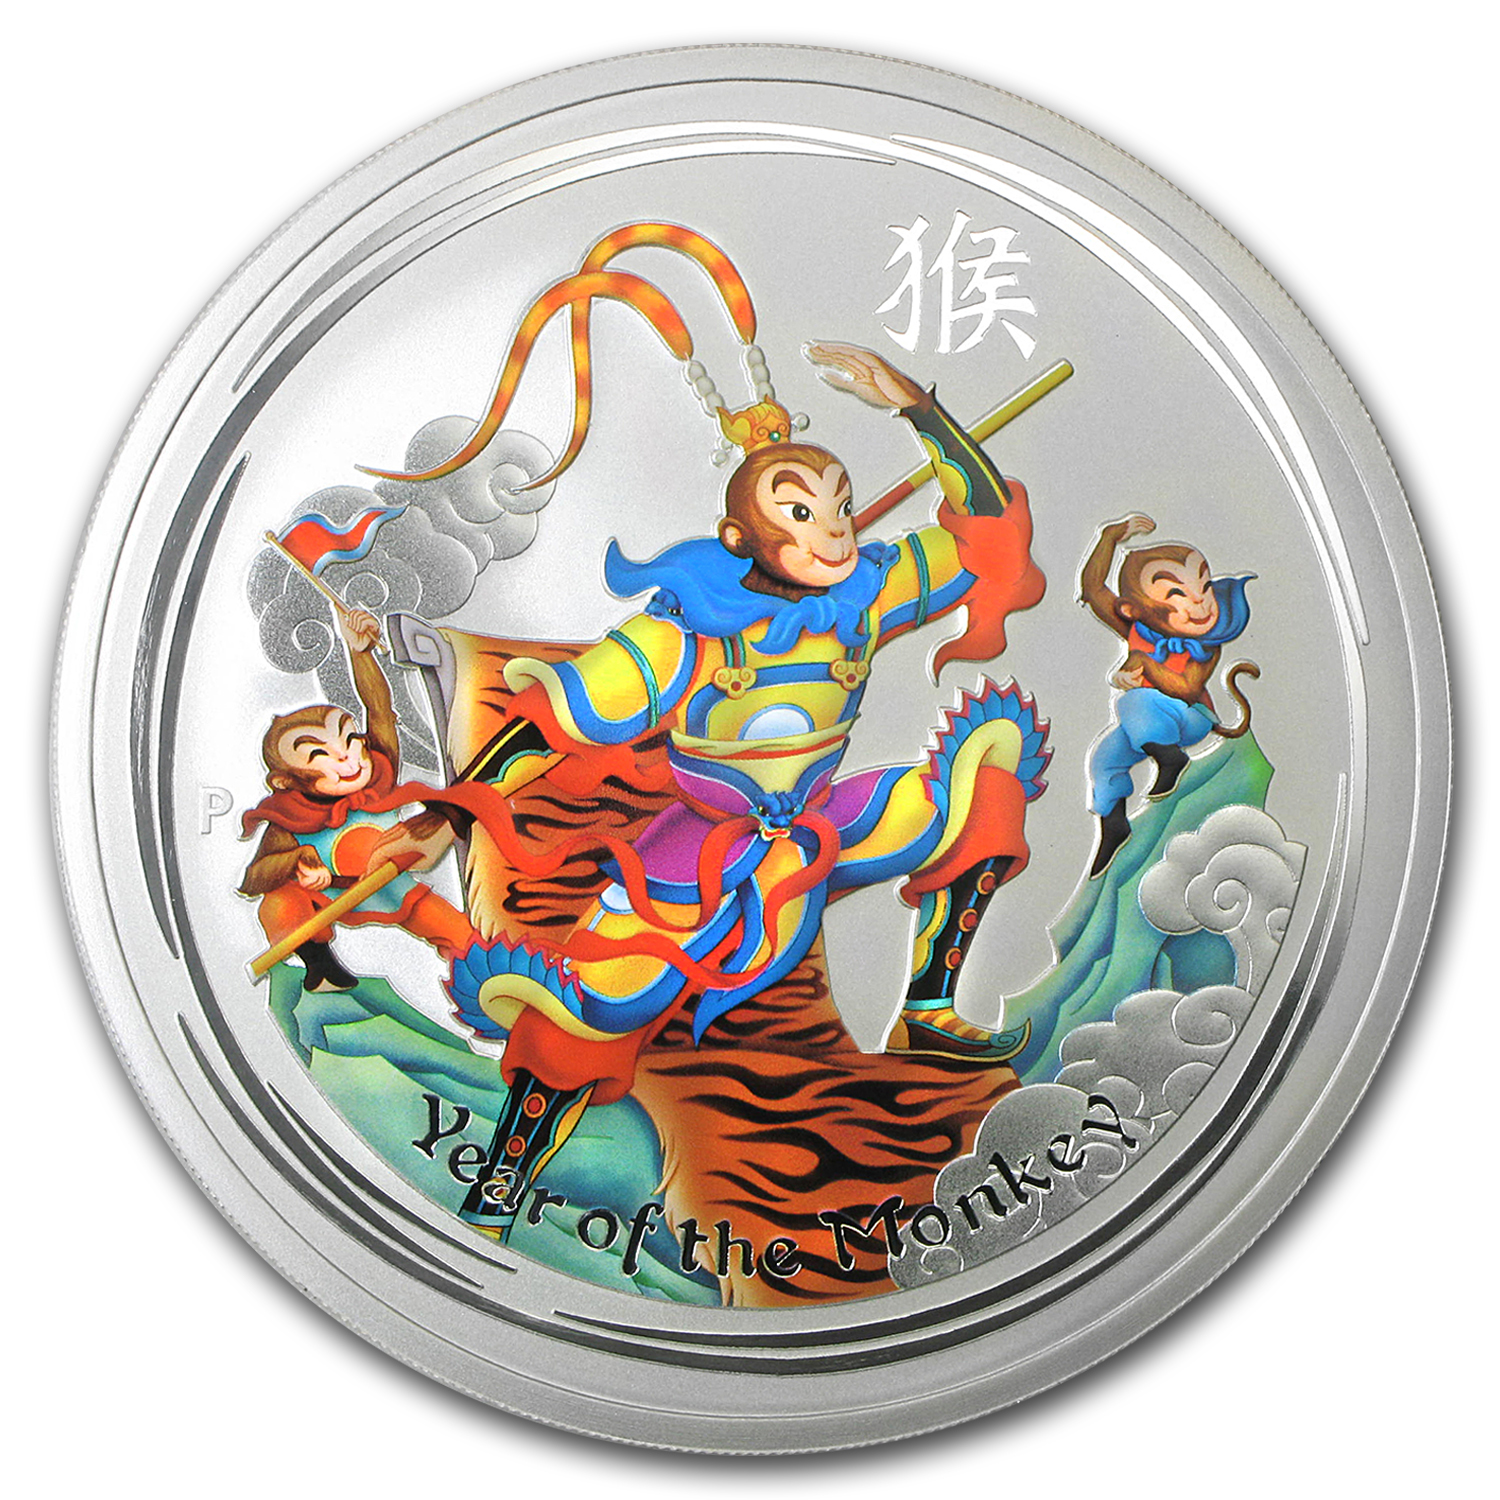 2016 Australia 5 oz Silver Lunar Monkey King Colorized BU